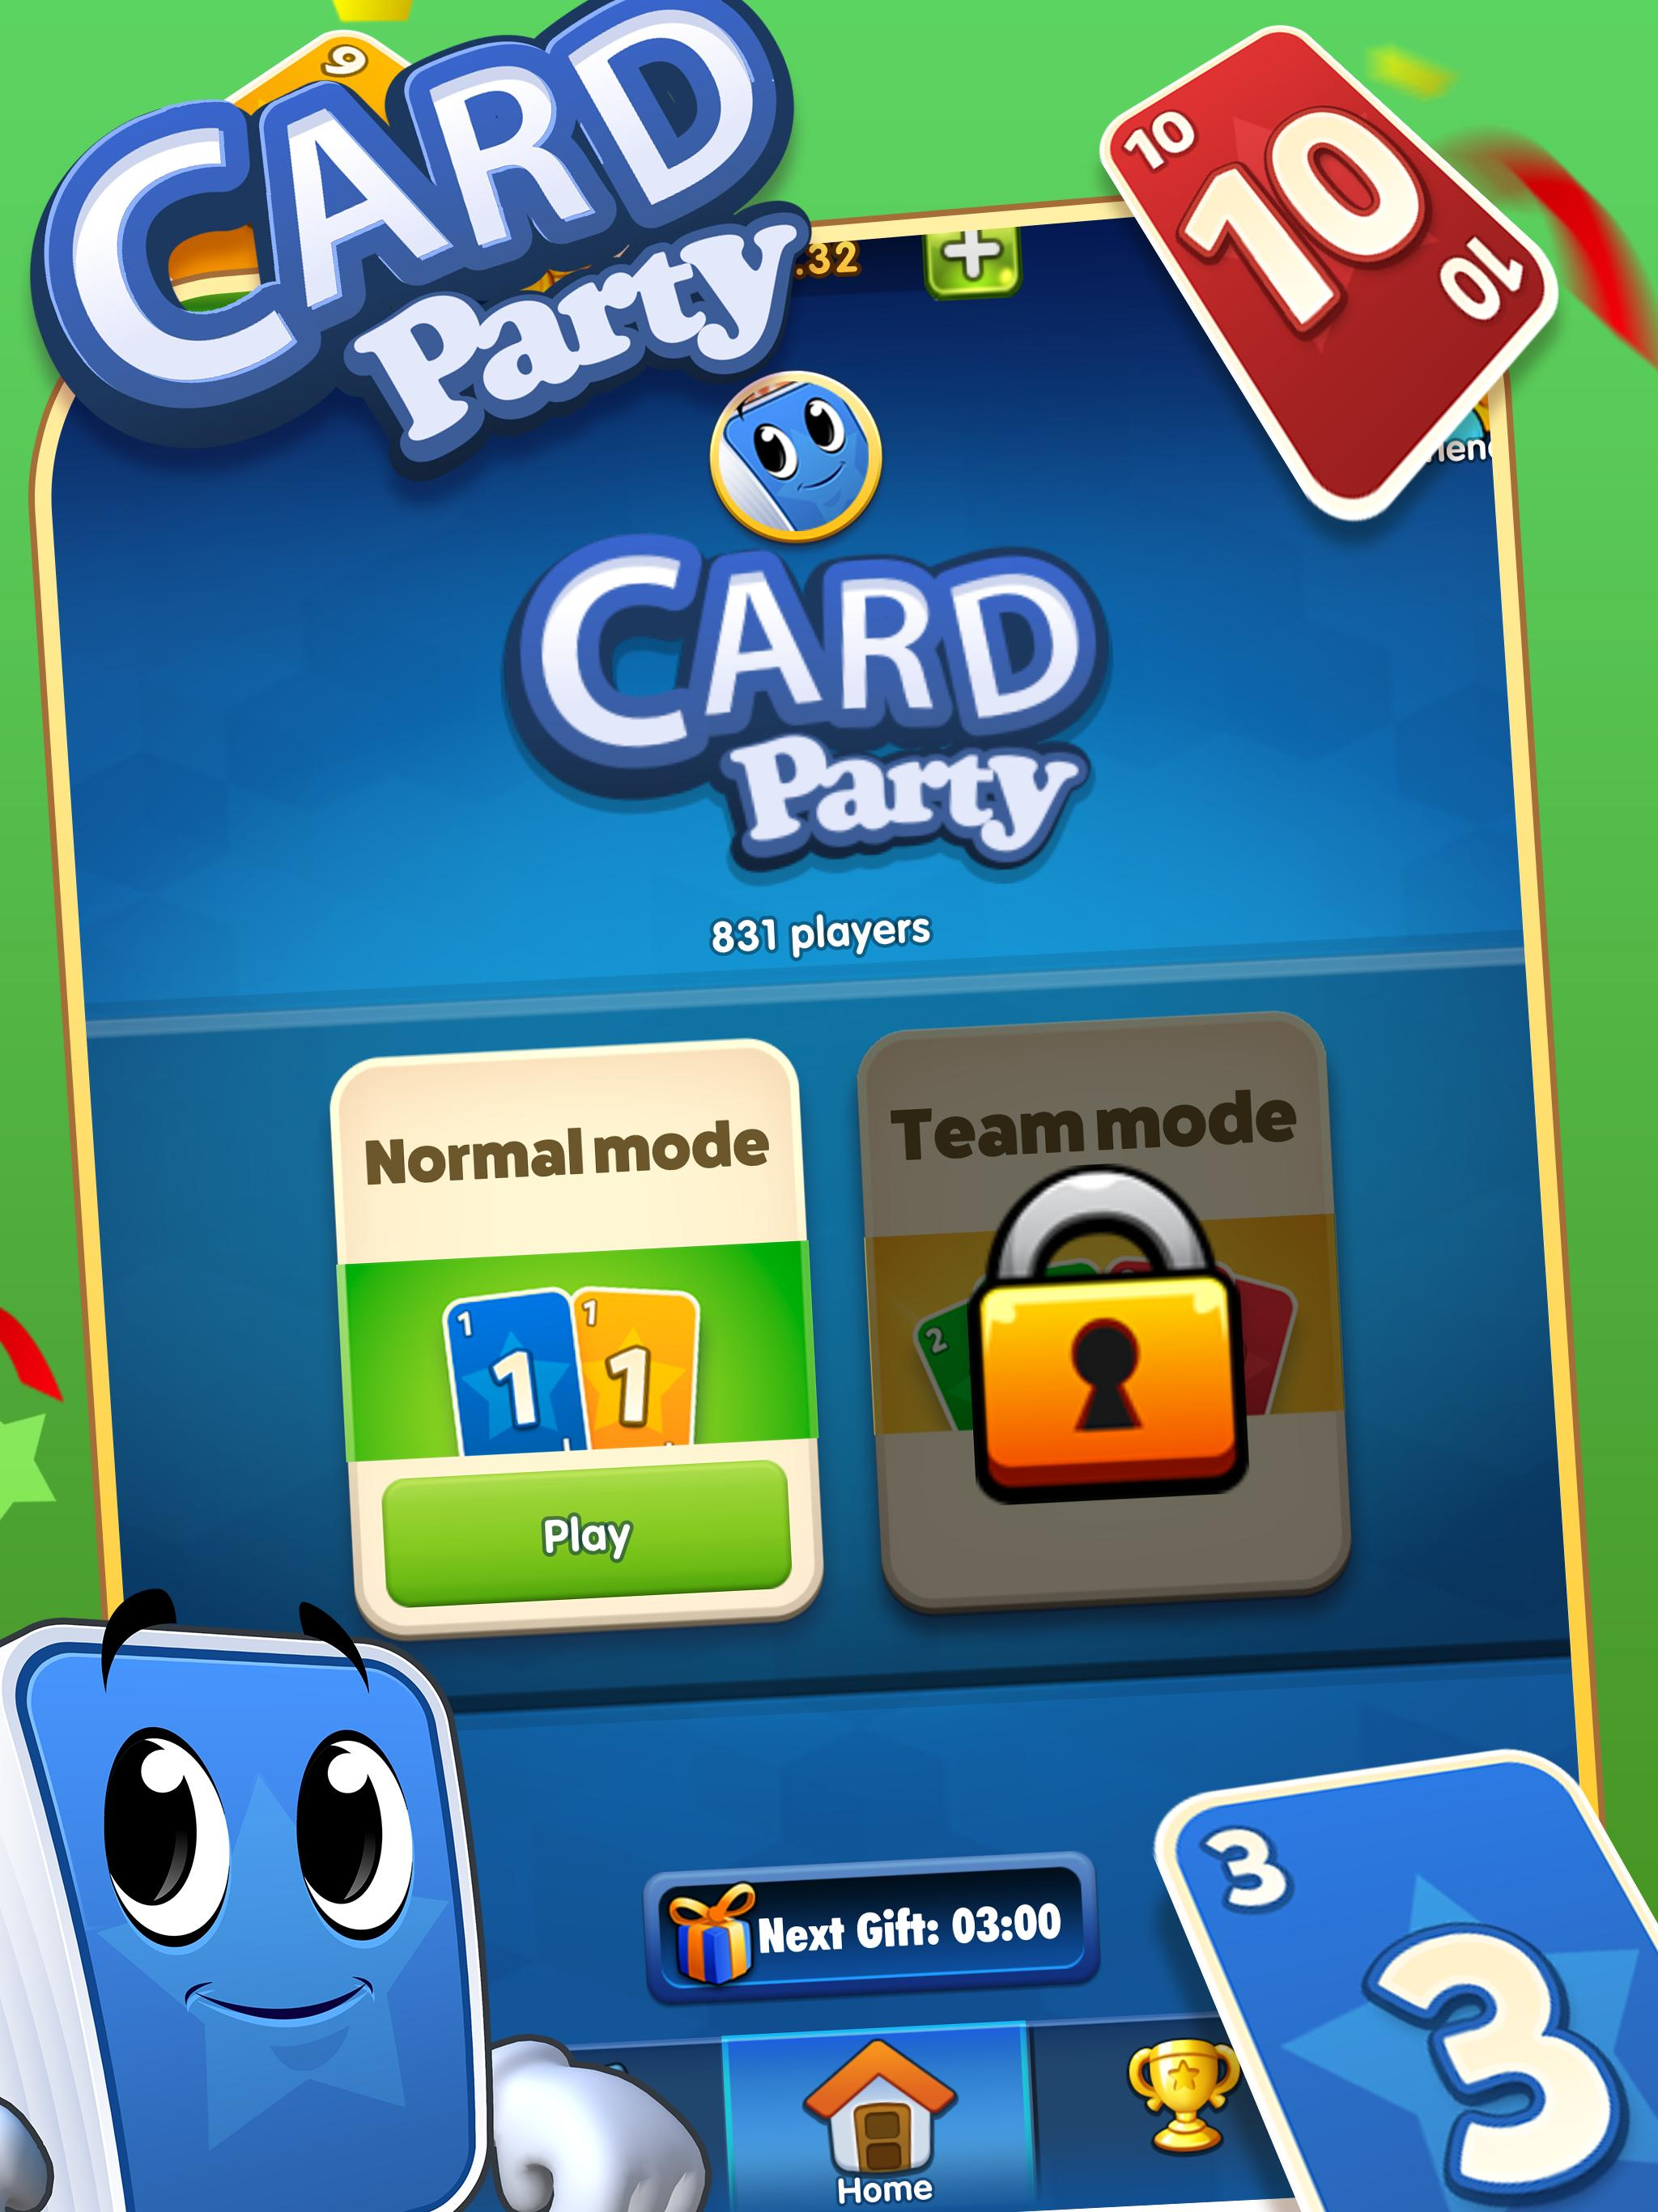 GamePoint CardParty 24357 Screenshot 6